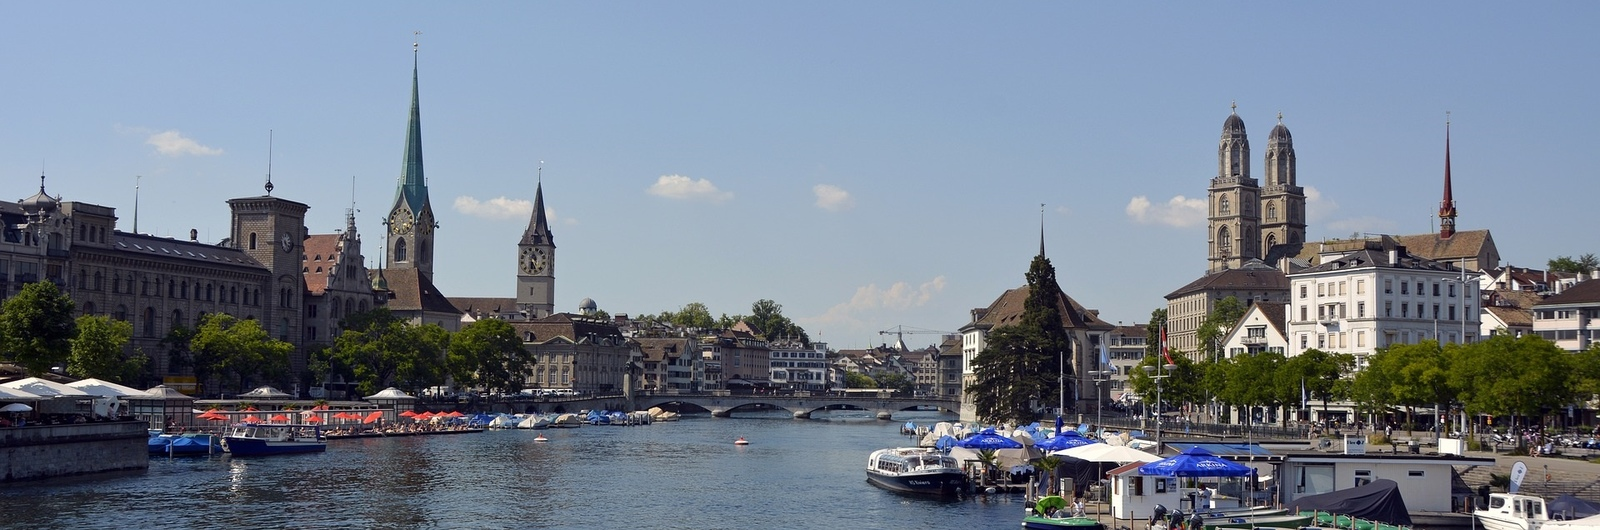 zurich city header